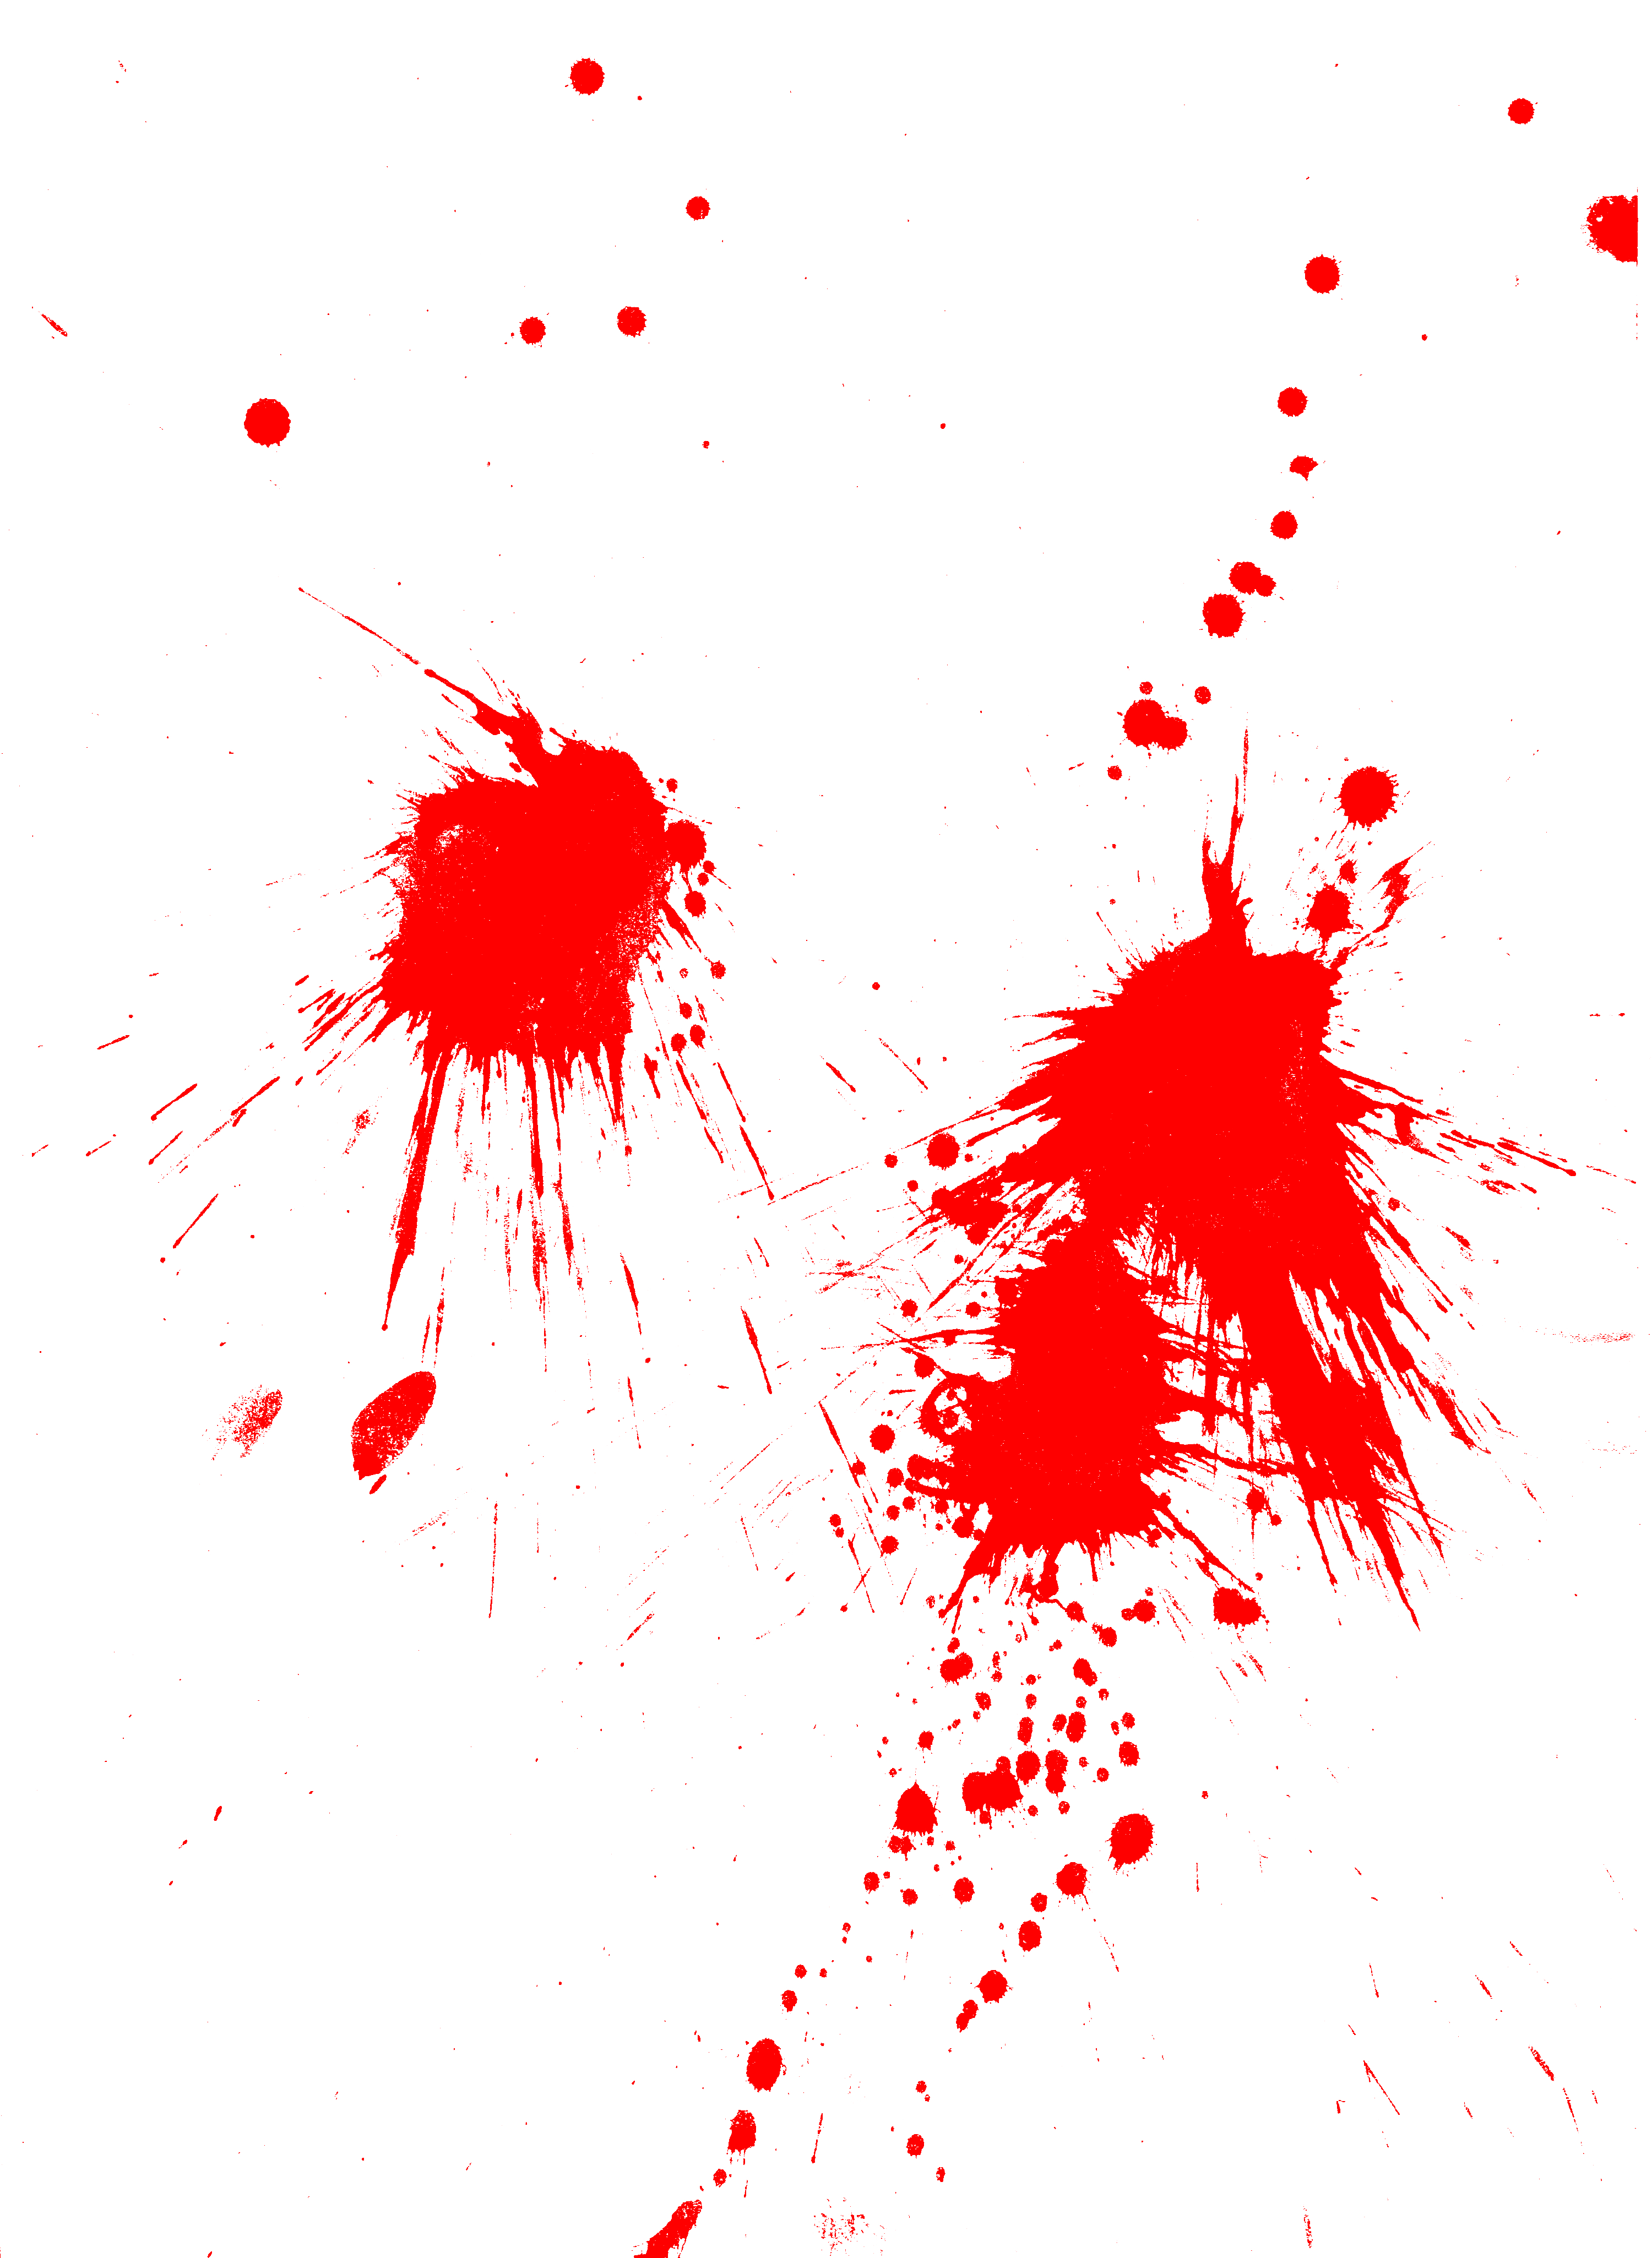 15 Blood Splatter Textures Jpg Onlygfx Com I've gathered about 100 blood texture photos and backgrounds that you can use in your designs. 15 blood splatter textures jpg